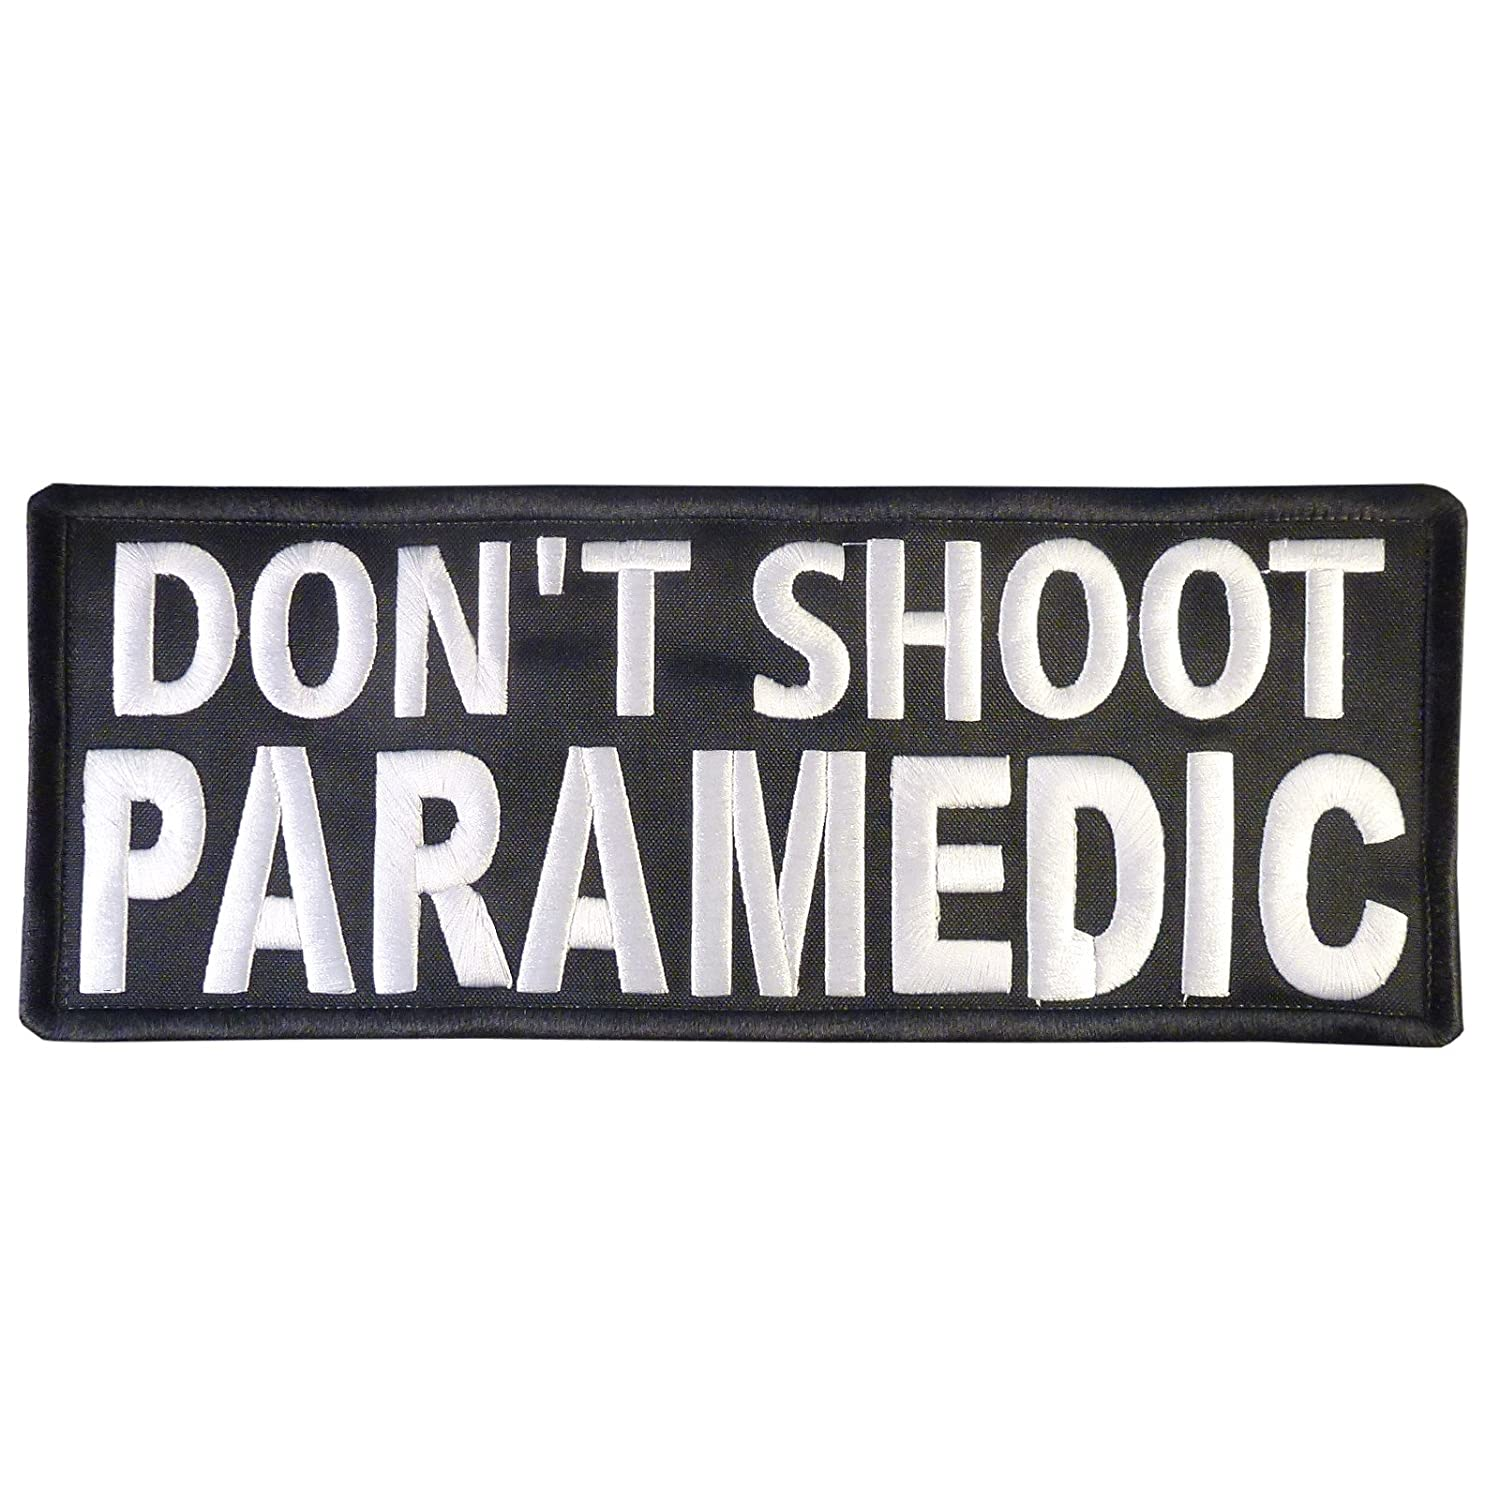 DONT SHOOT PARAMEDIC Big XL 10x4 inch EMT EMS MEDIC Embroidered Nylon Touch Fastener Patch